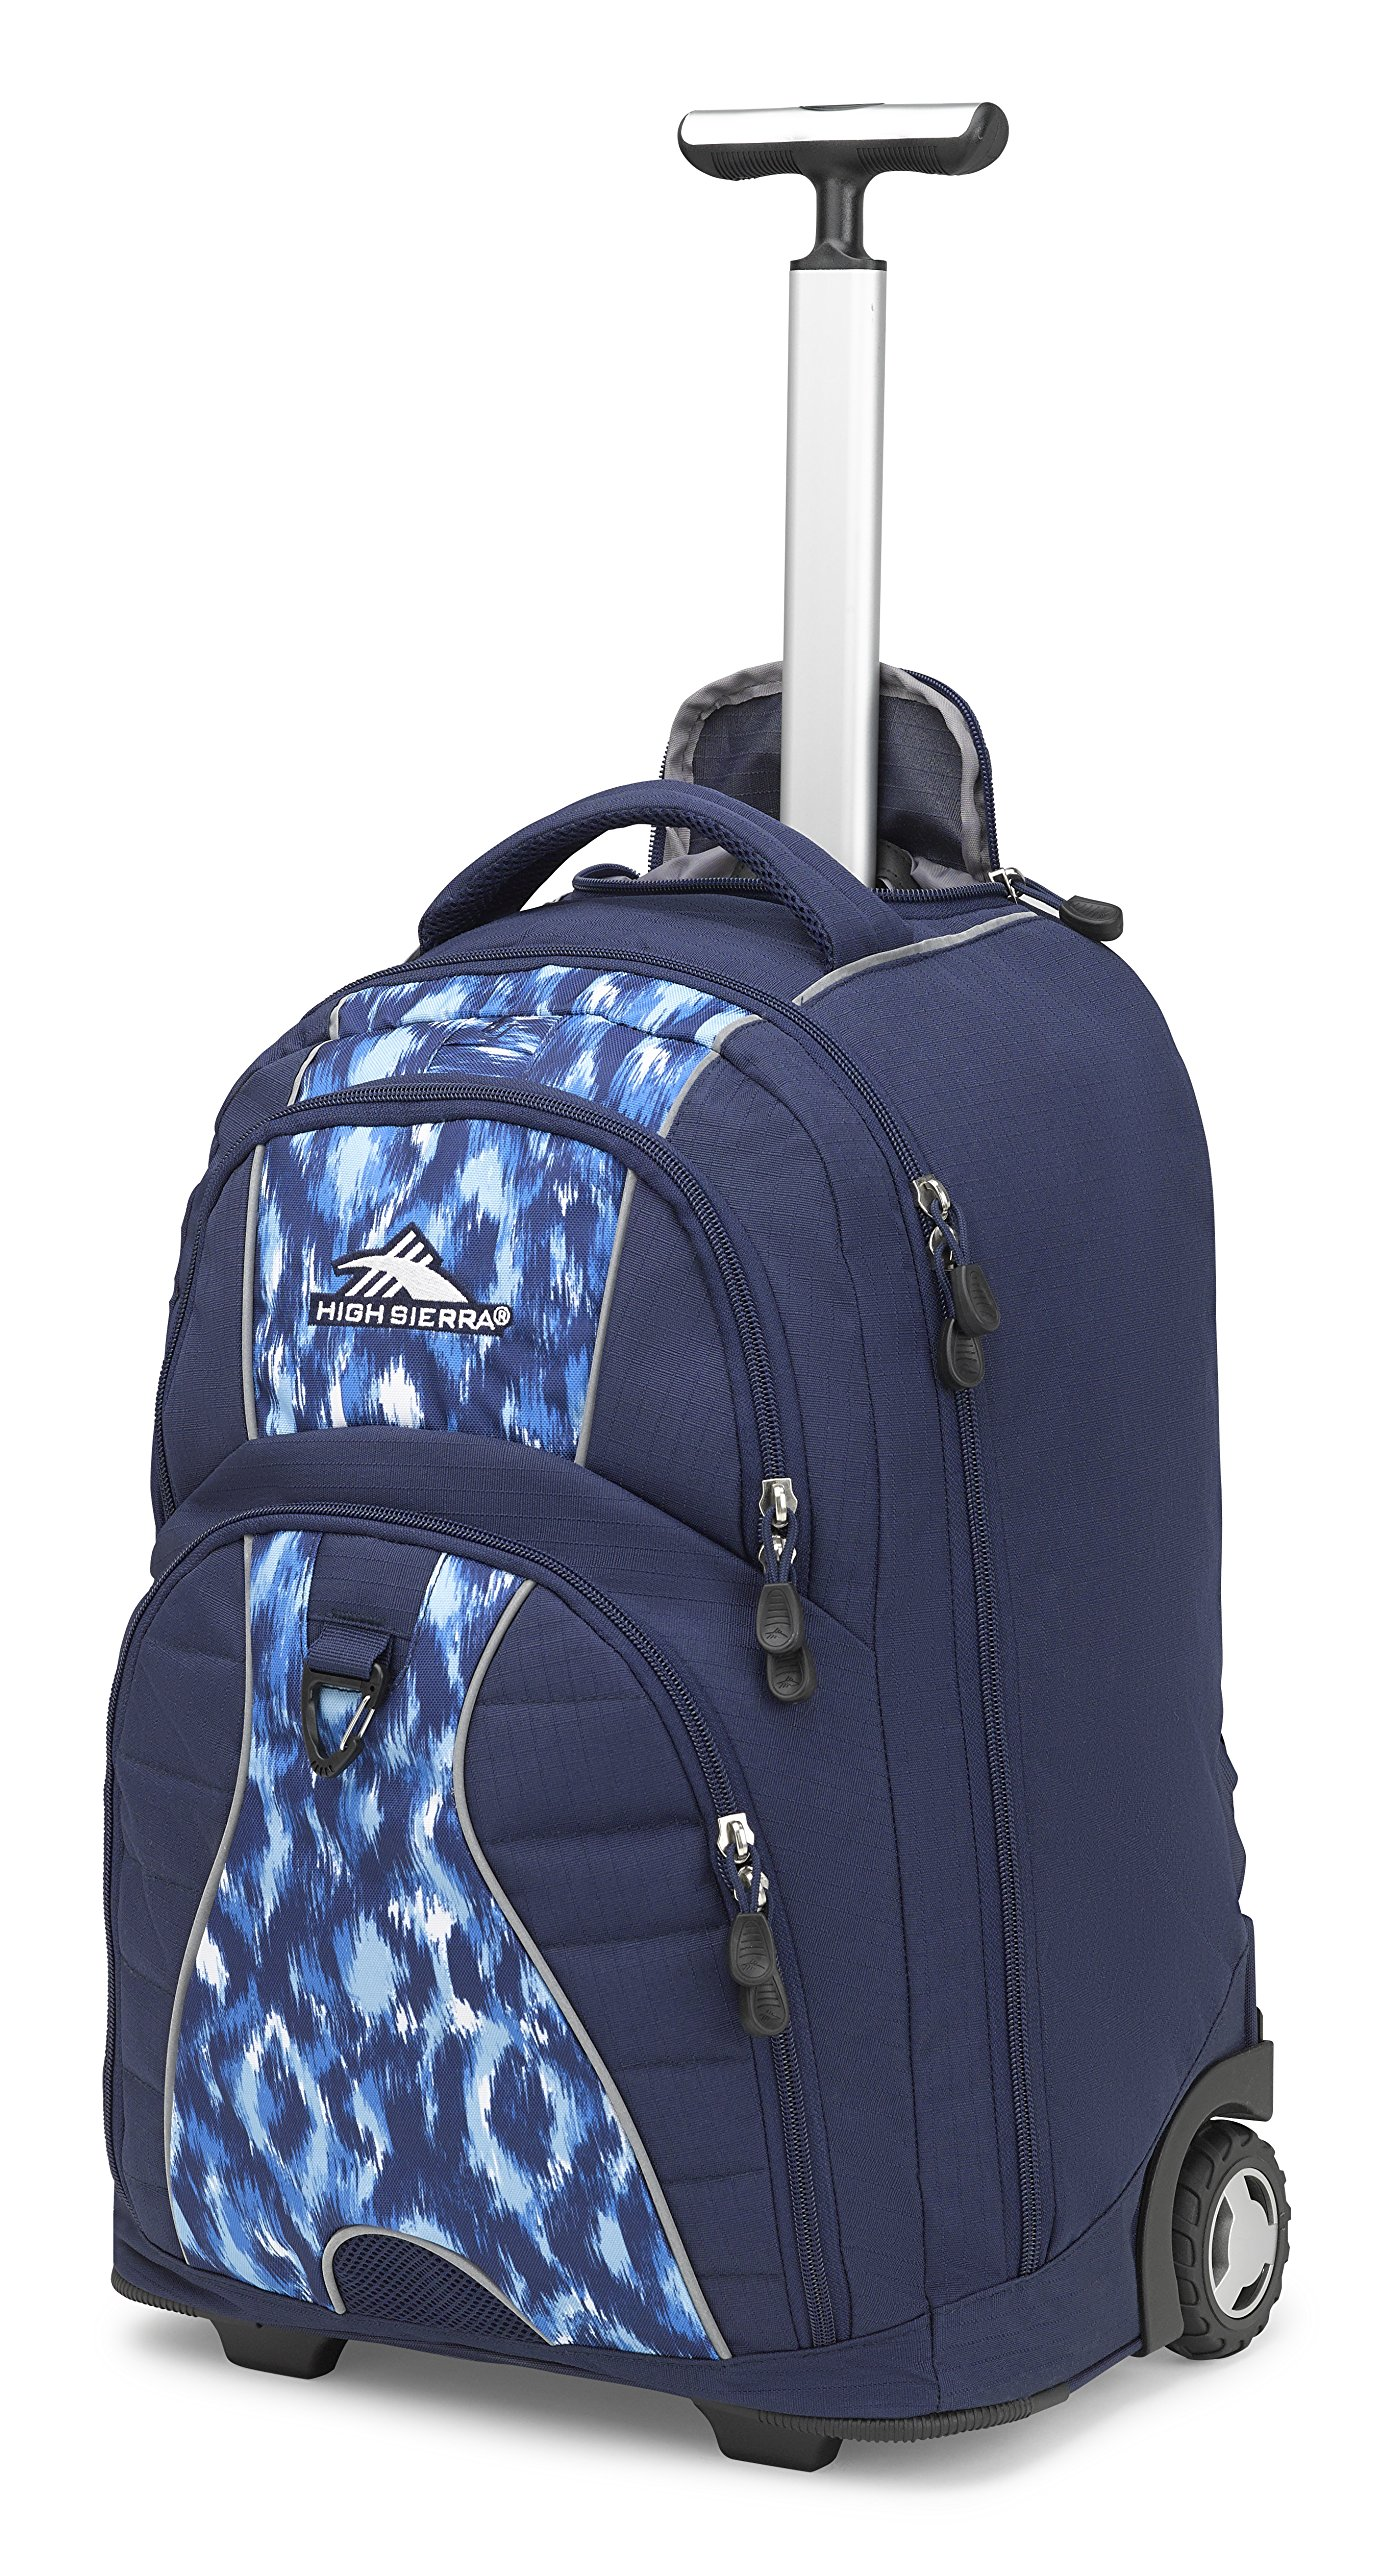 High Sierra Freewheel Wheeled Laptop Backpack, True Navy/Island Ikat